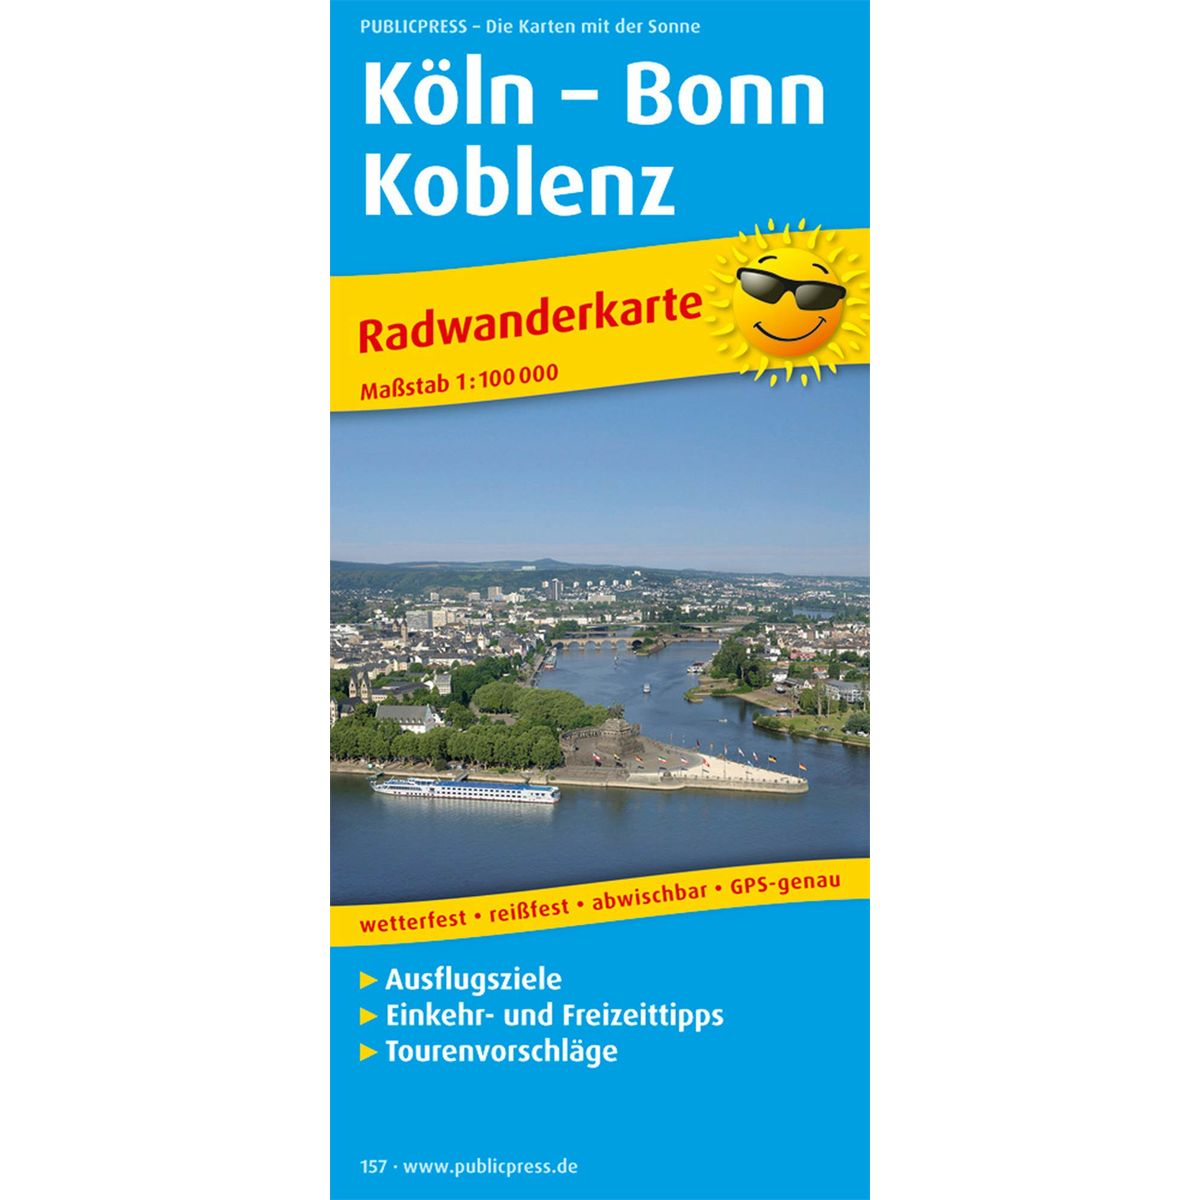 Cologne – Bonn – Koblenz bike tour map